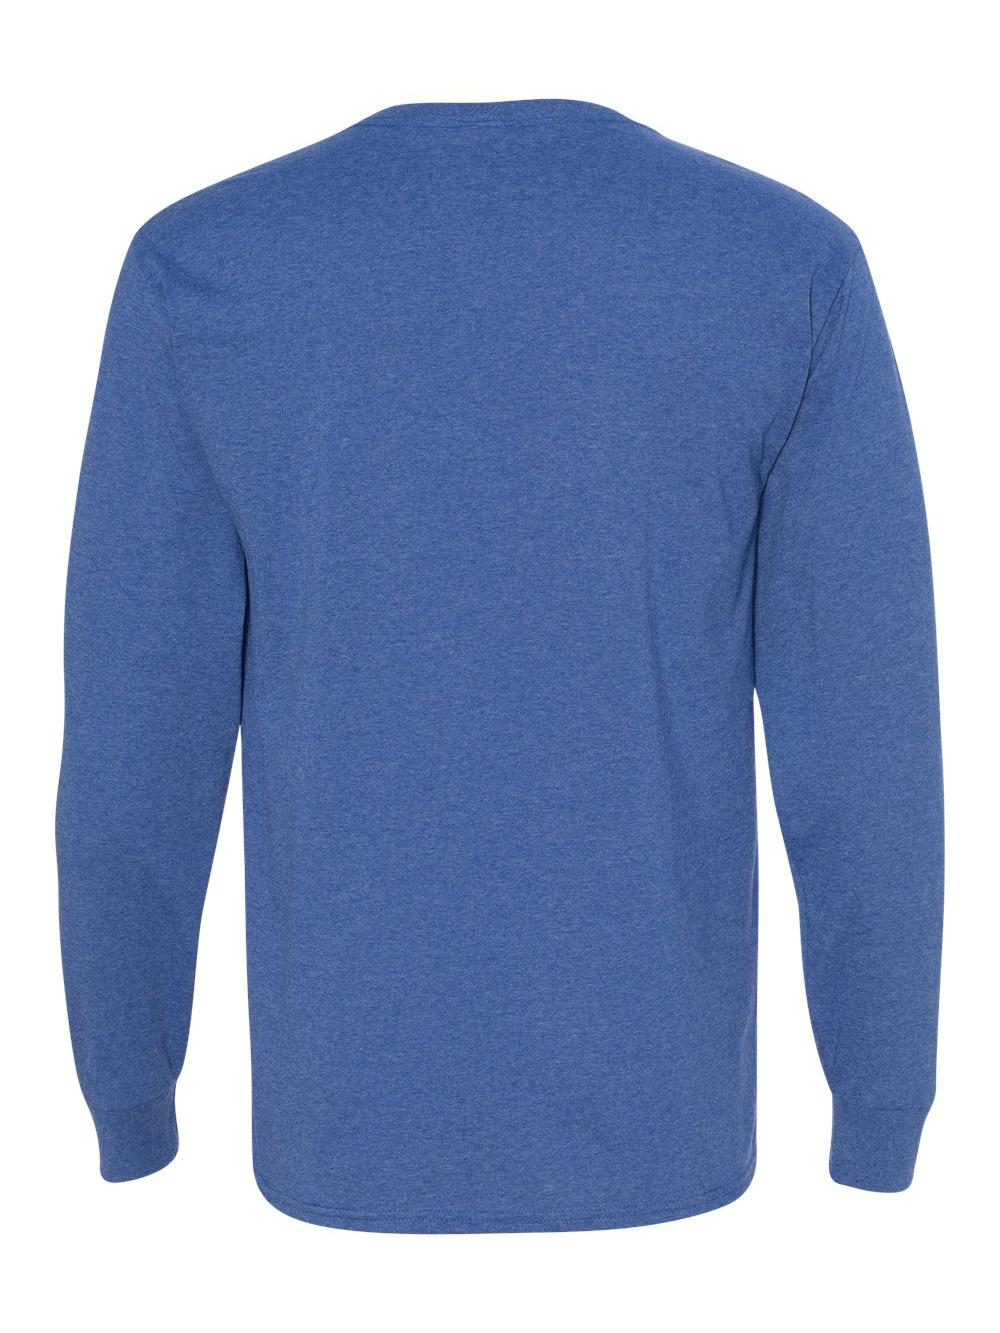 Fruit-of-the-Loom-HD-Cotton-Long-Sleeve-T-Shirt-4930R thumbnail 67